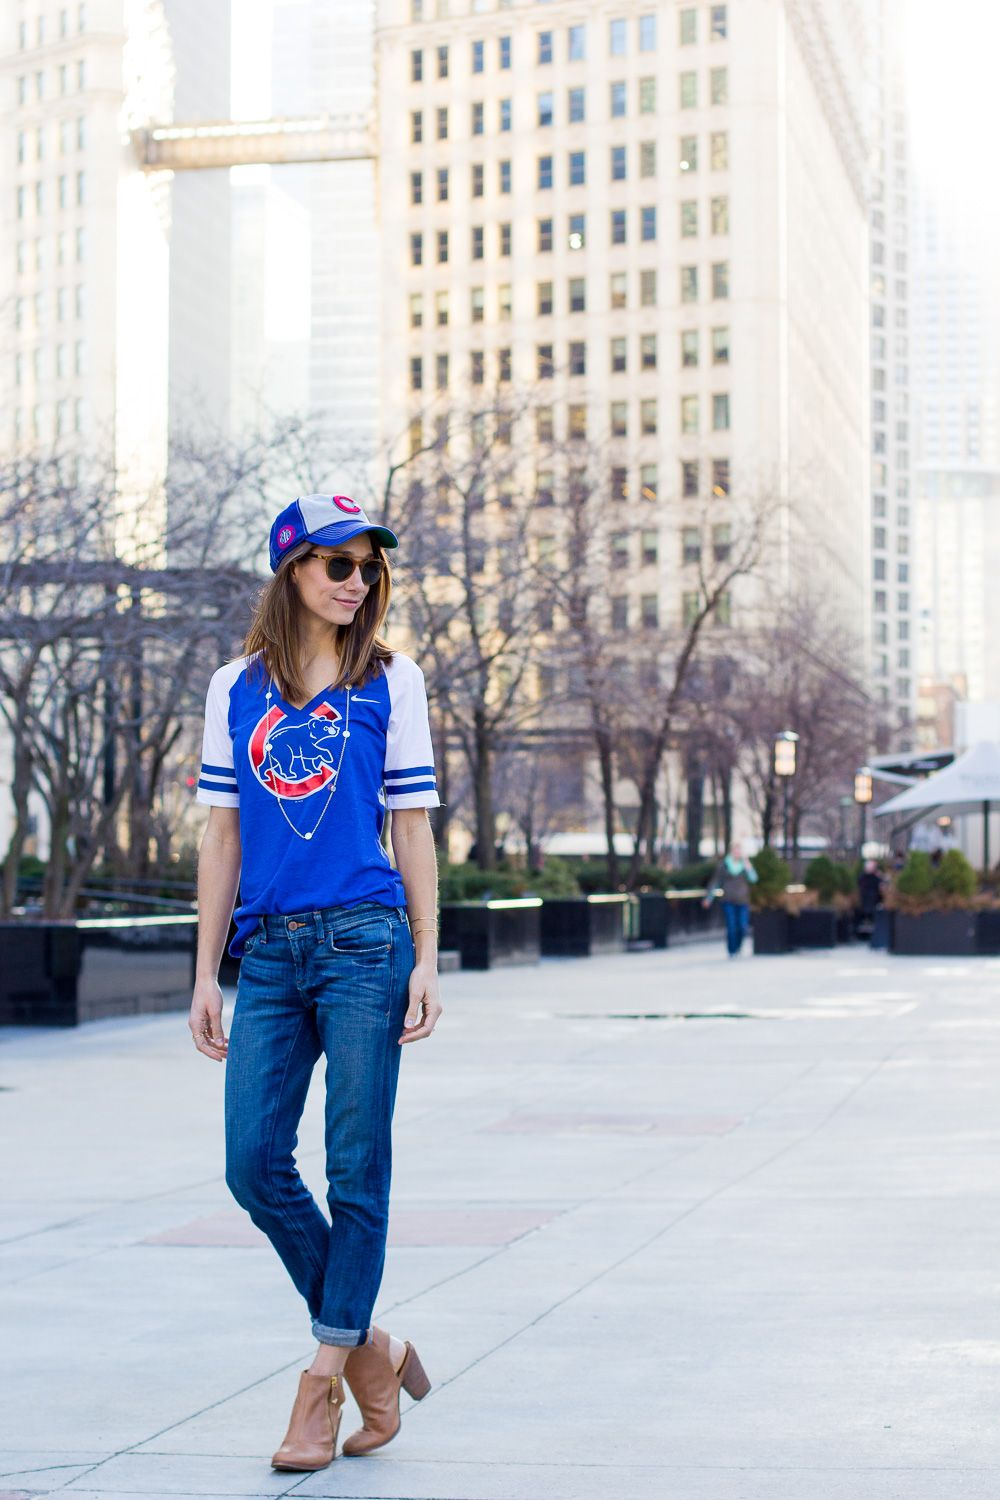 cf954c25183 Chicago Cubs Opening Day This Sunday — The Fox   She